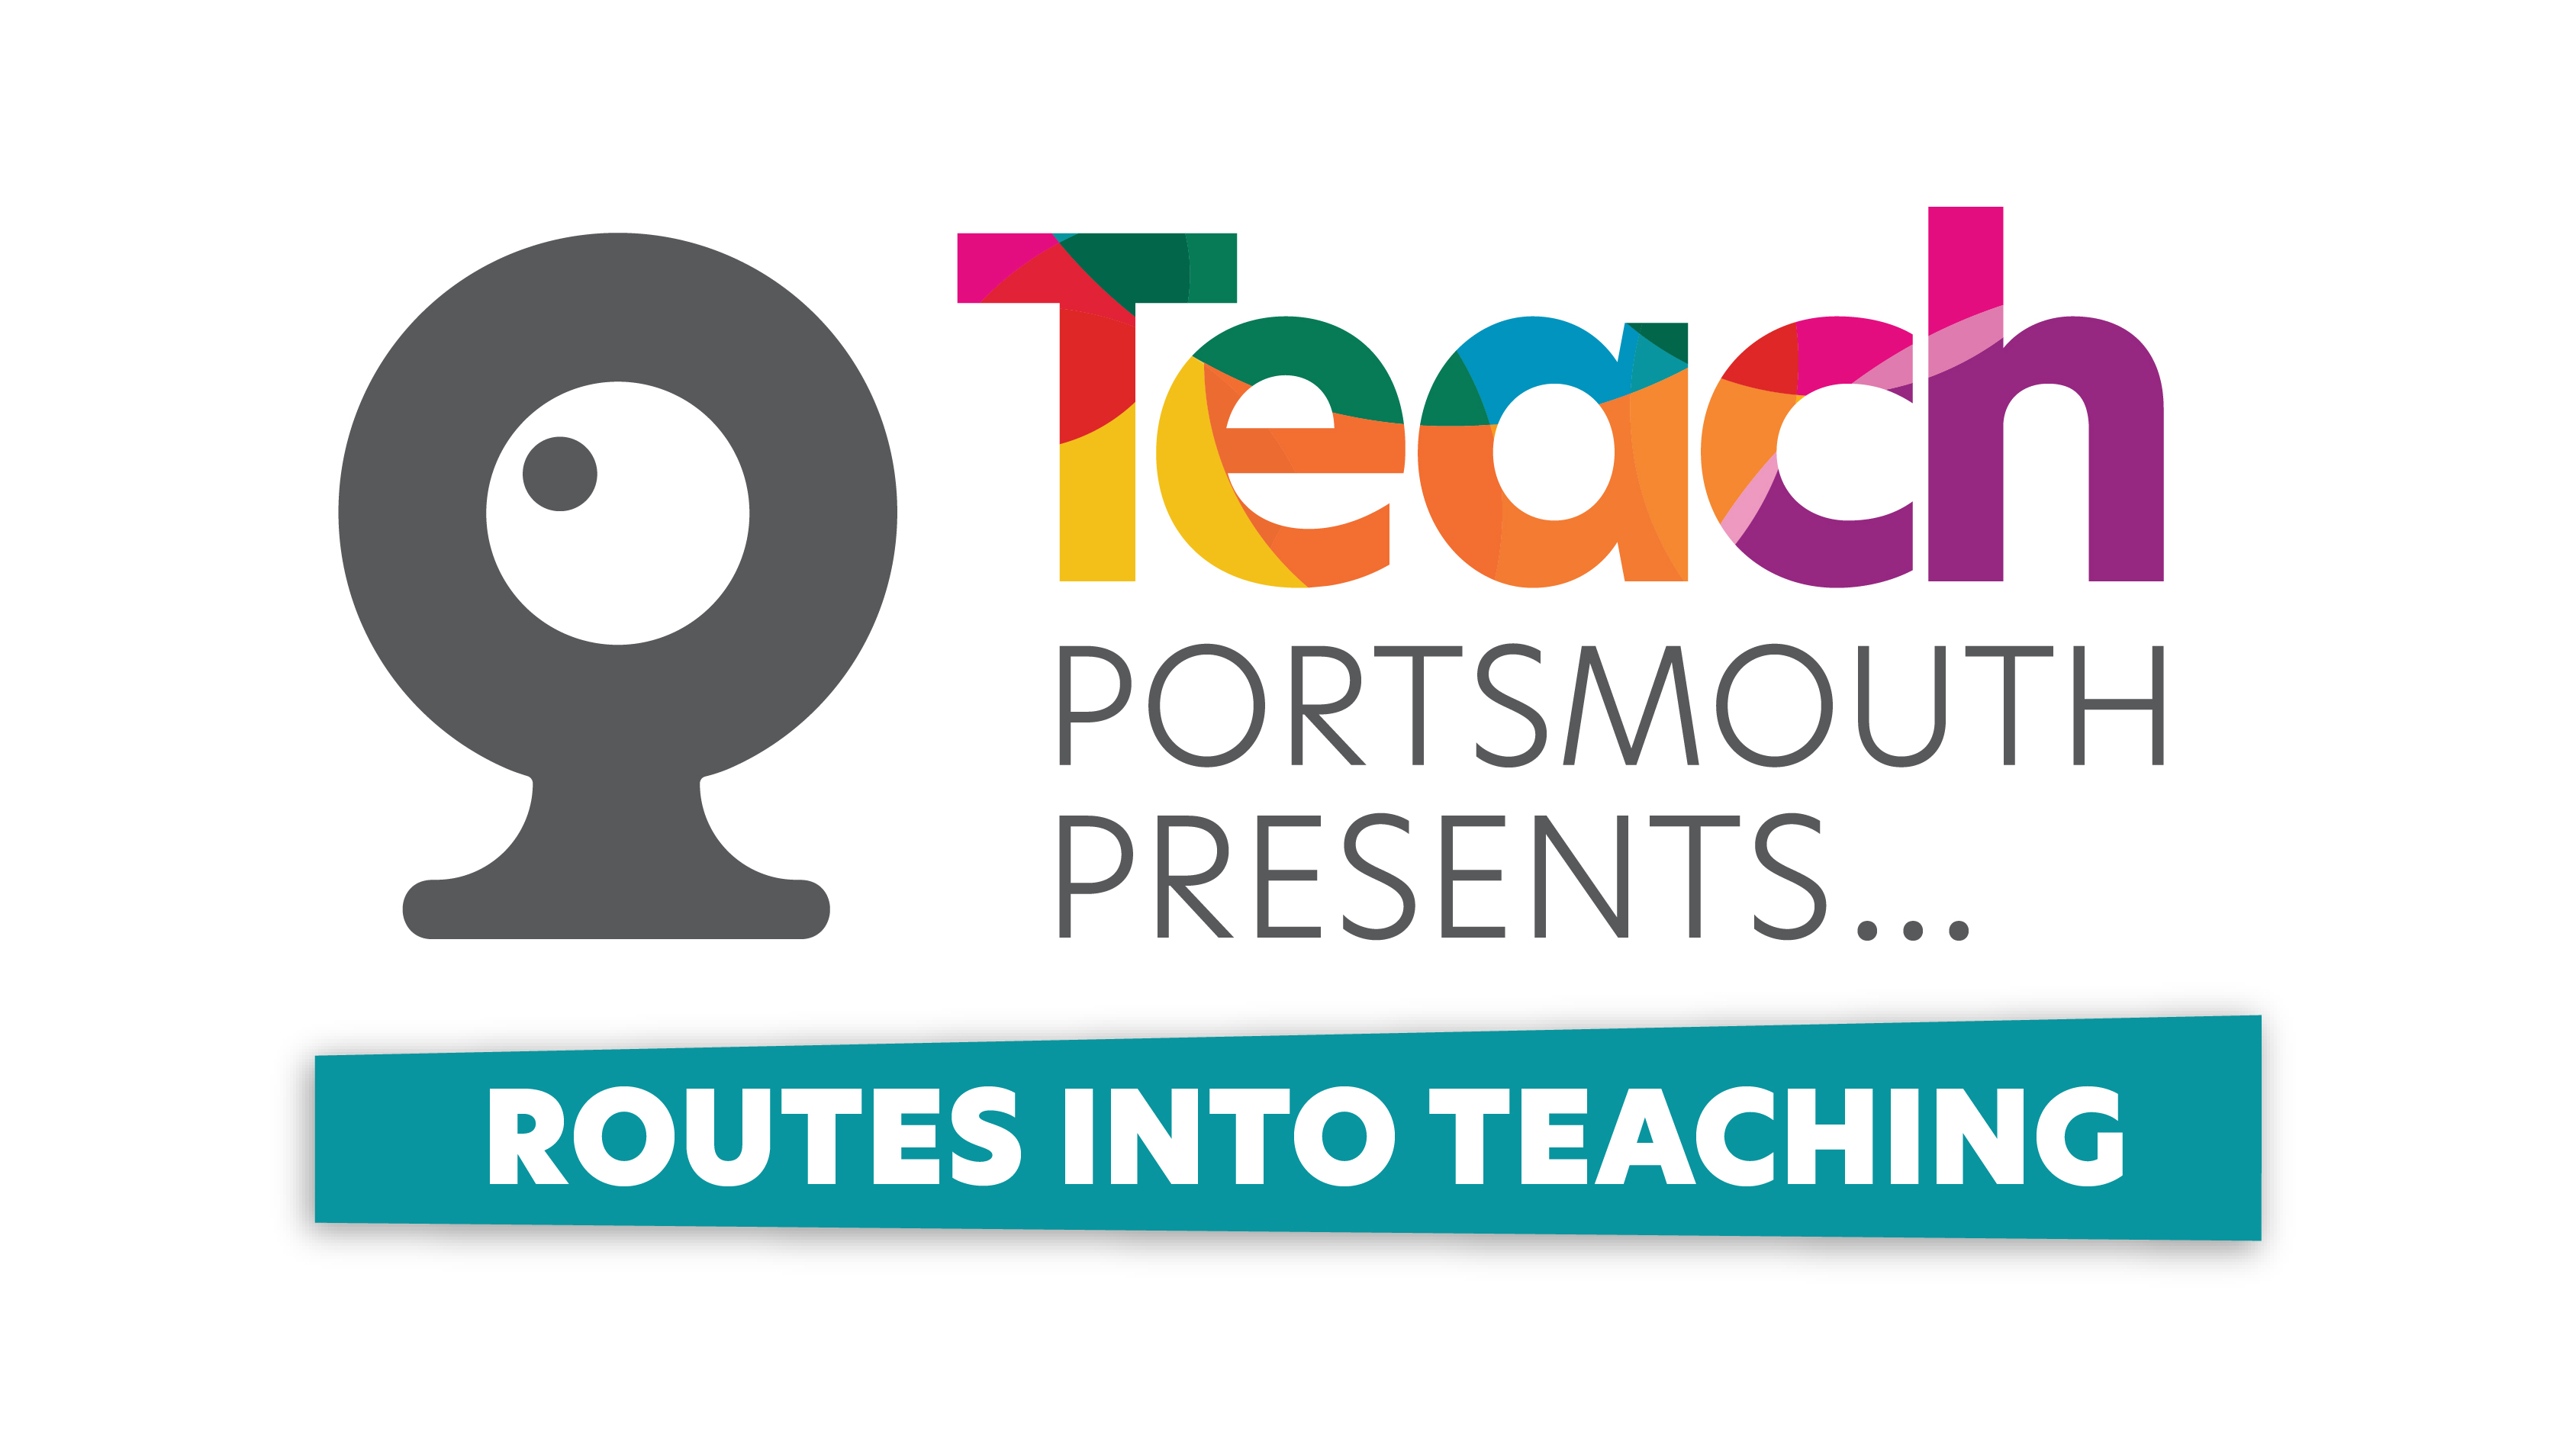 Teach Portsmouth presents routes into teaching